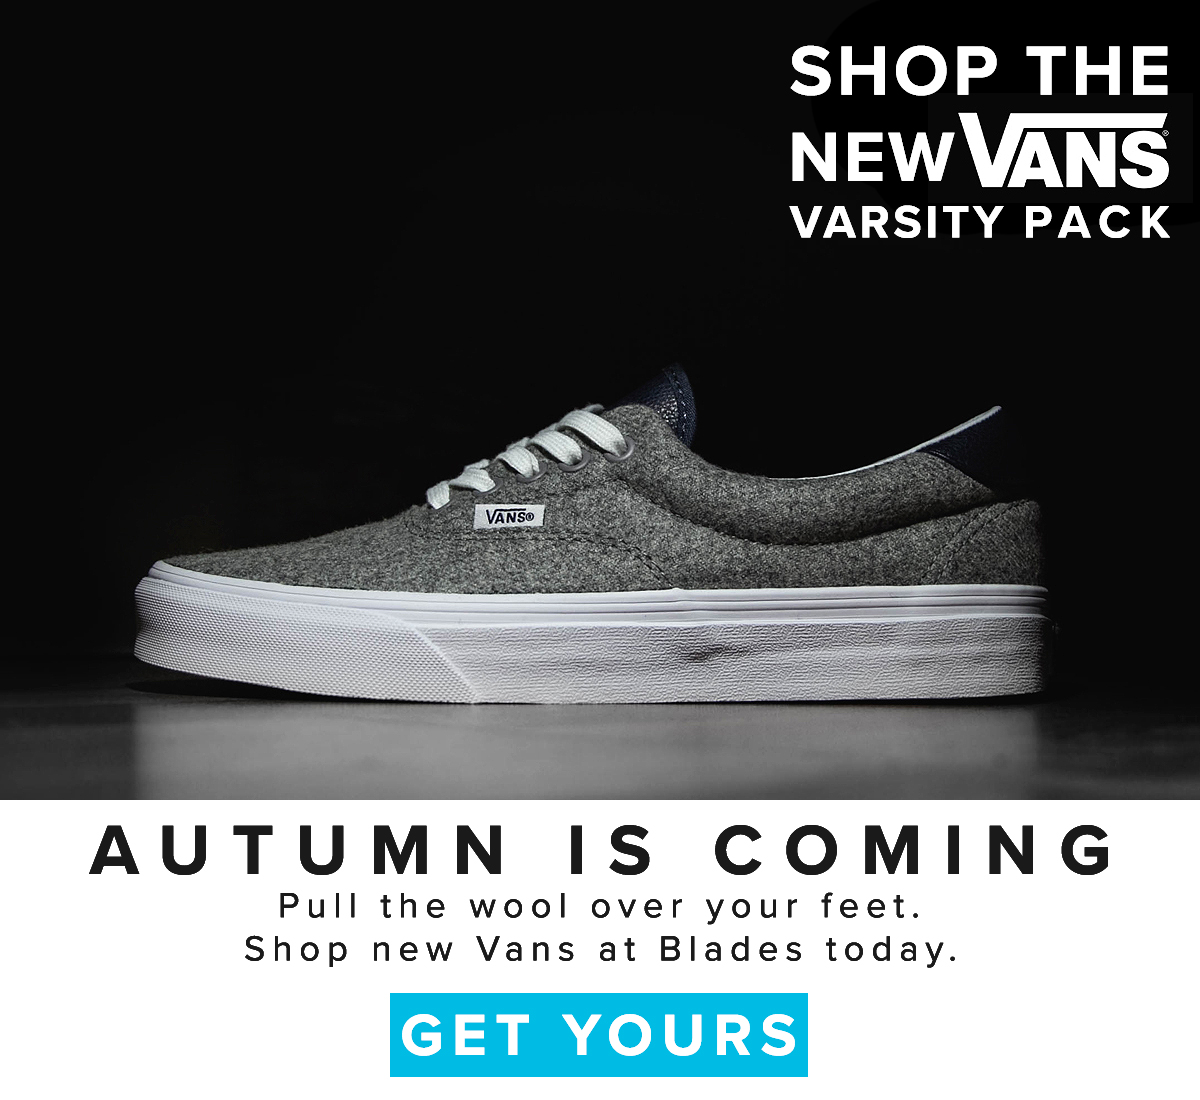 Blades  Shop skate-ready favorites from the Vans Varsity Pack 5ccad5b96